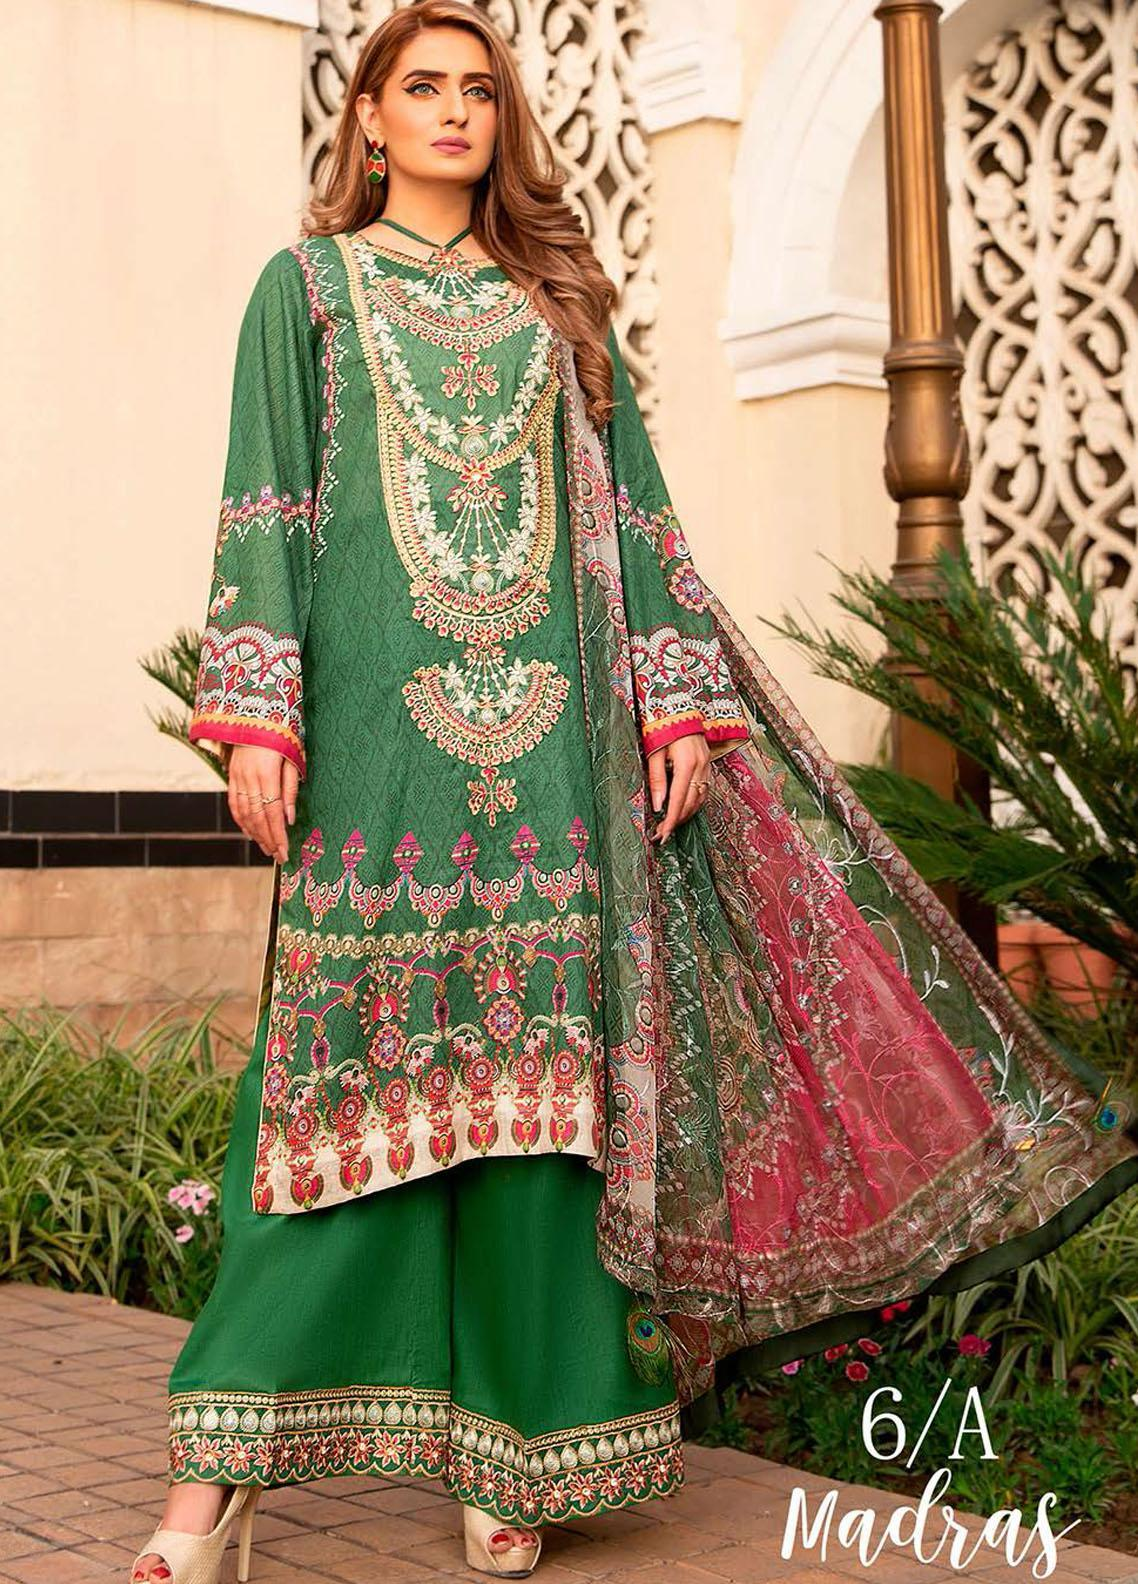 Libaas Embroidered Lawn Suits Unstitched 3 Piece LB21E 6A Madras - Eid Collection